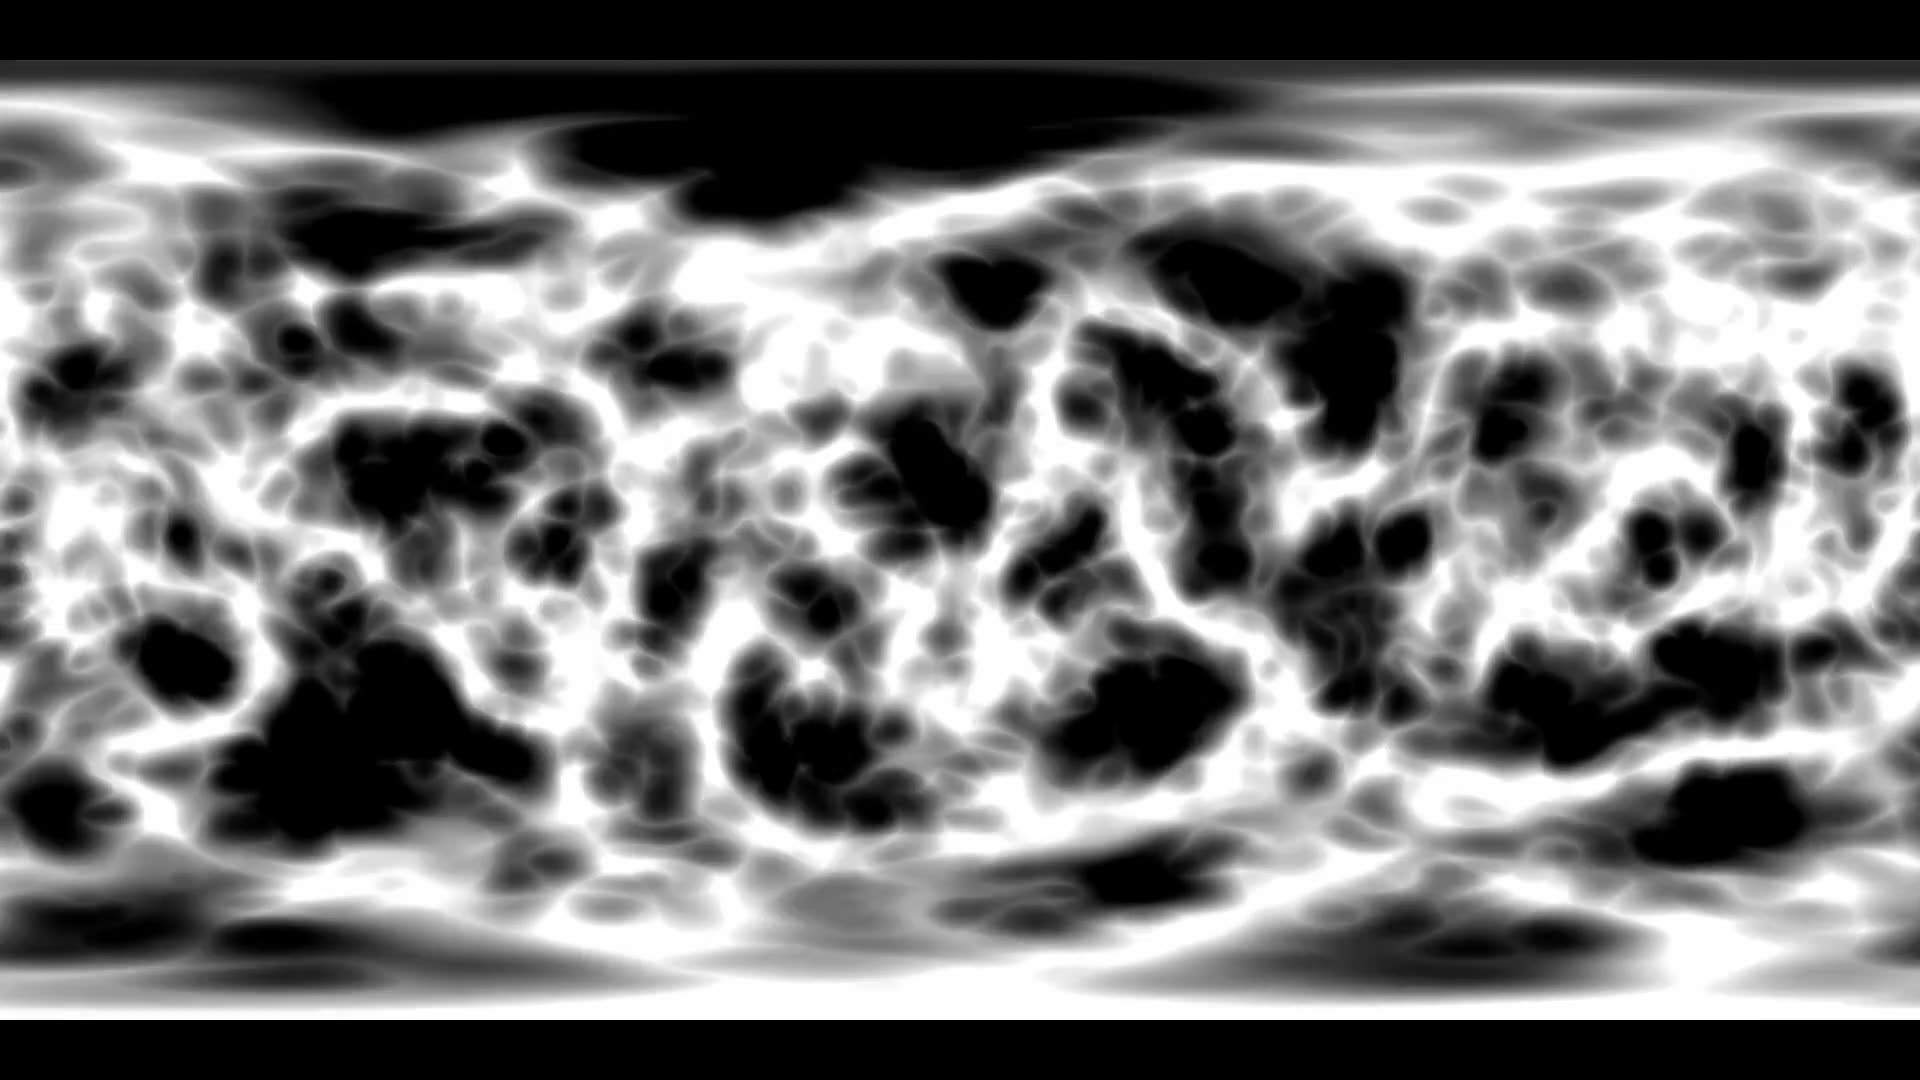 vr 360 Background black and white wave Noise. virtual reality